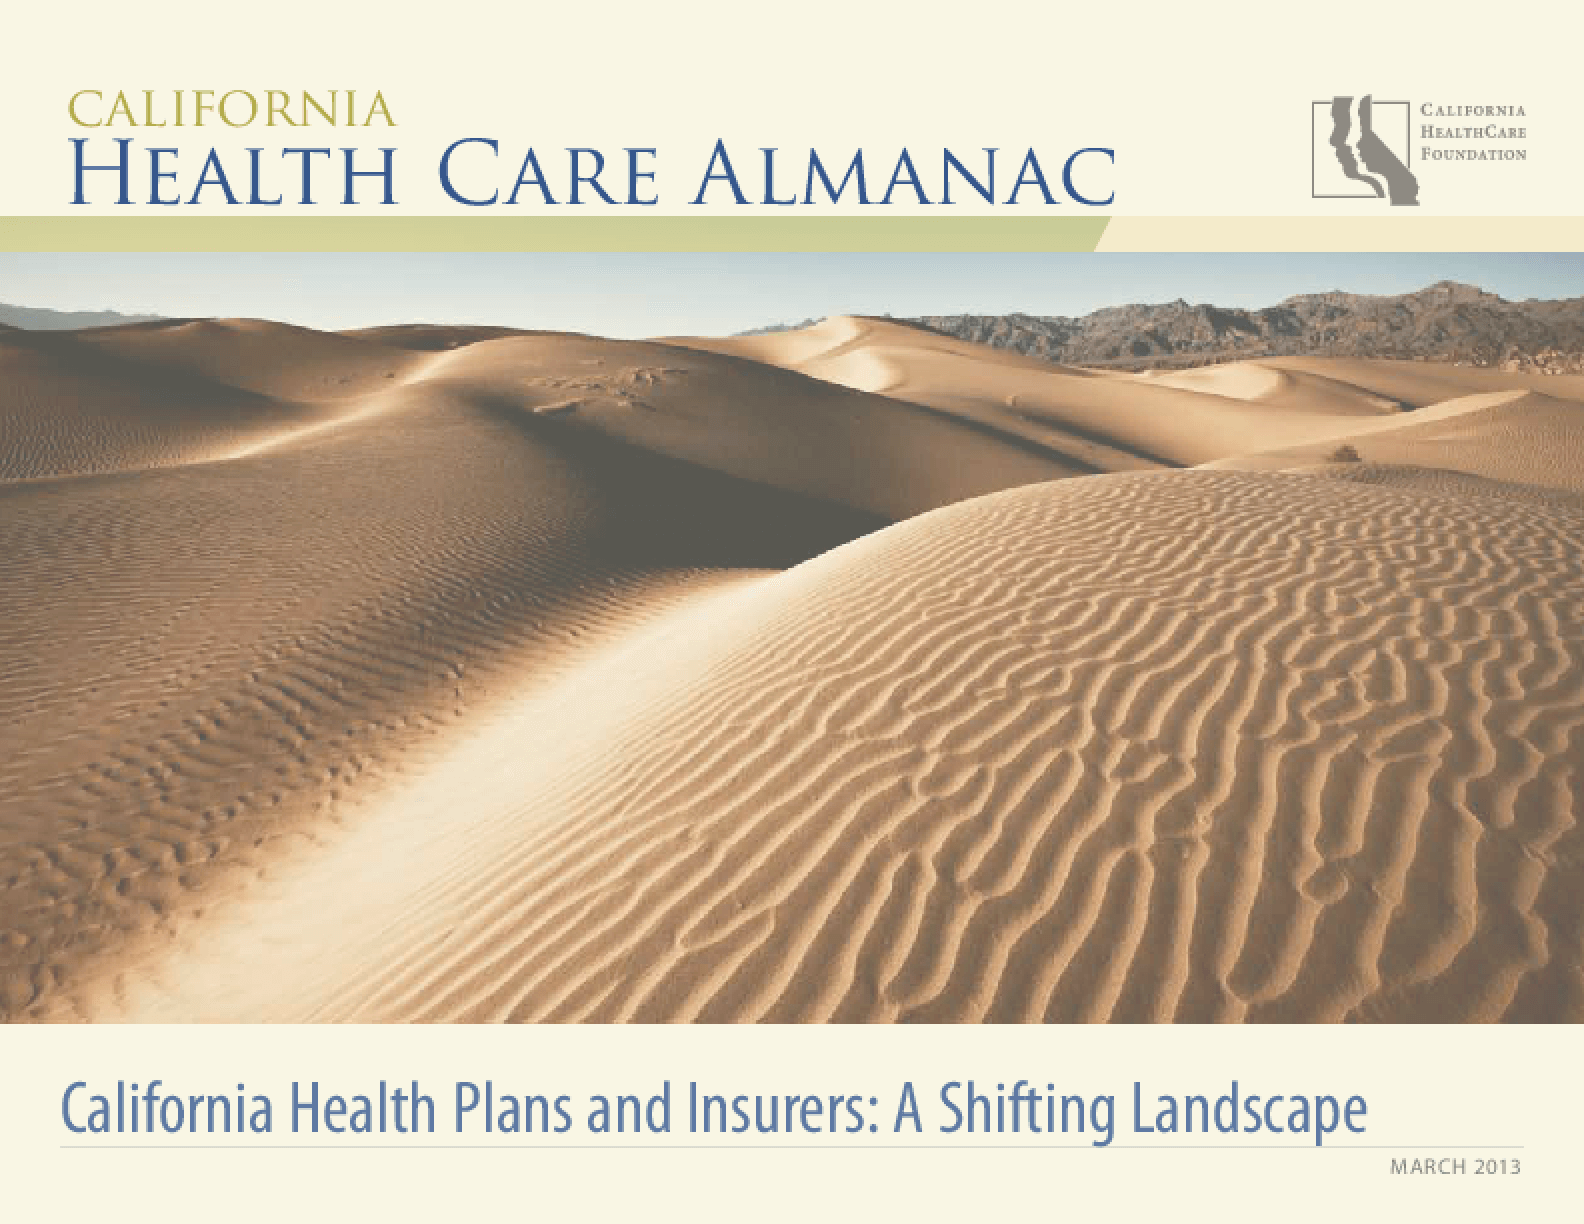 California Health Plans and Insurers: A Shifting Landscape